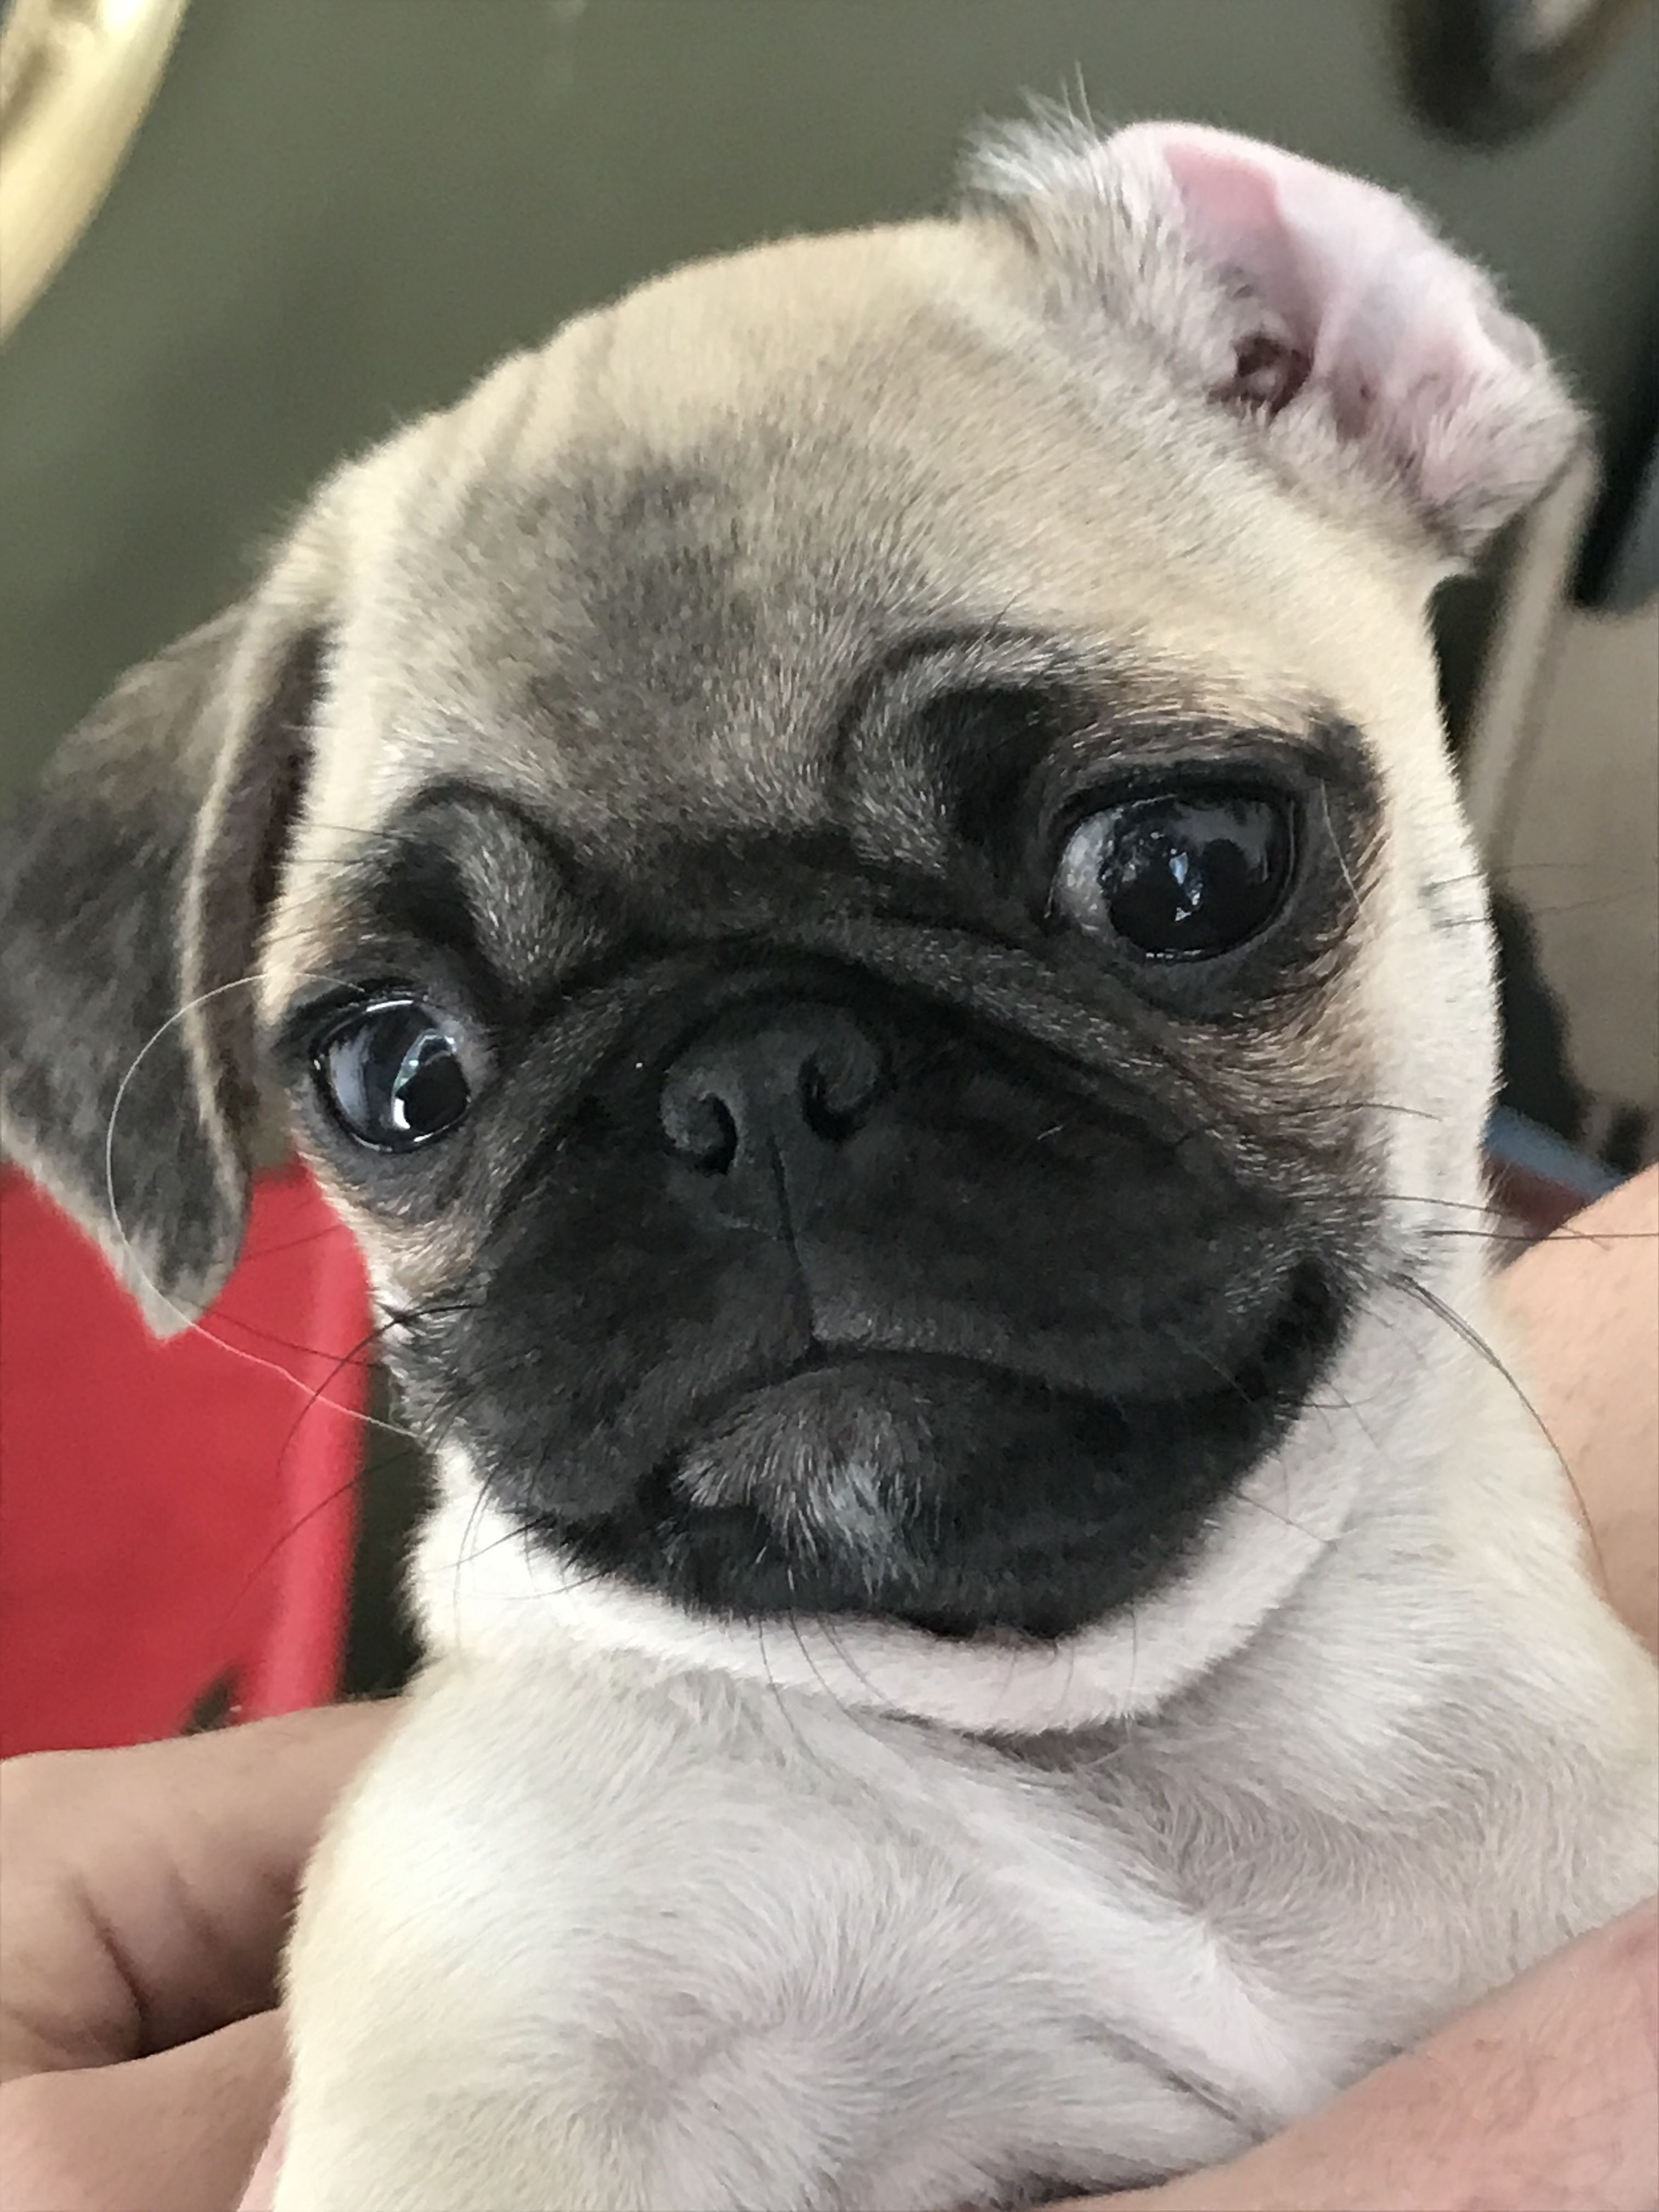 Pin By Linda Blank On Animals Cute Baby Animals Pugs Pug Puppies